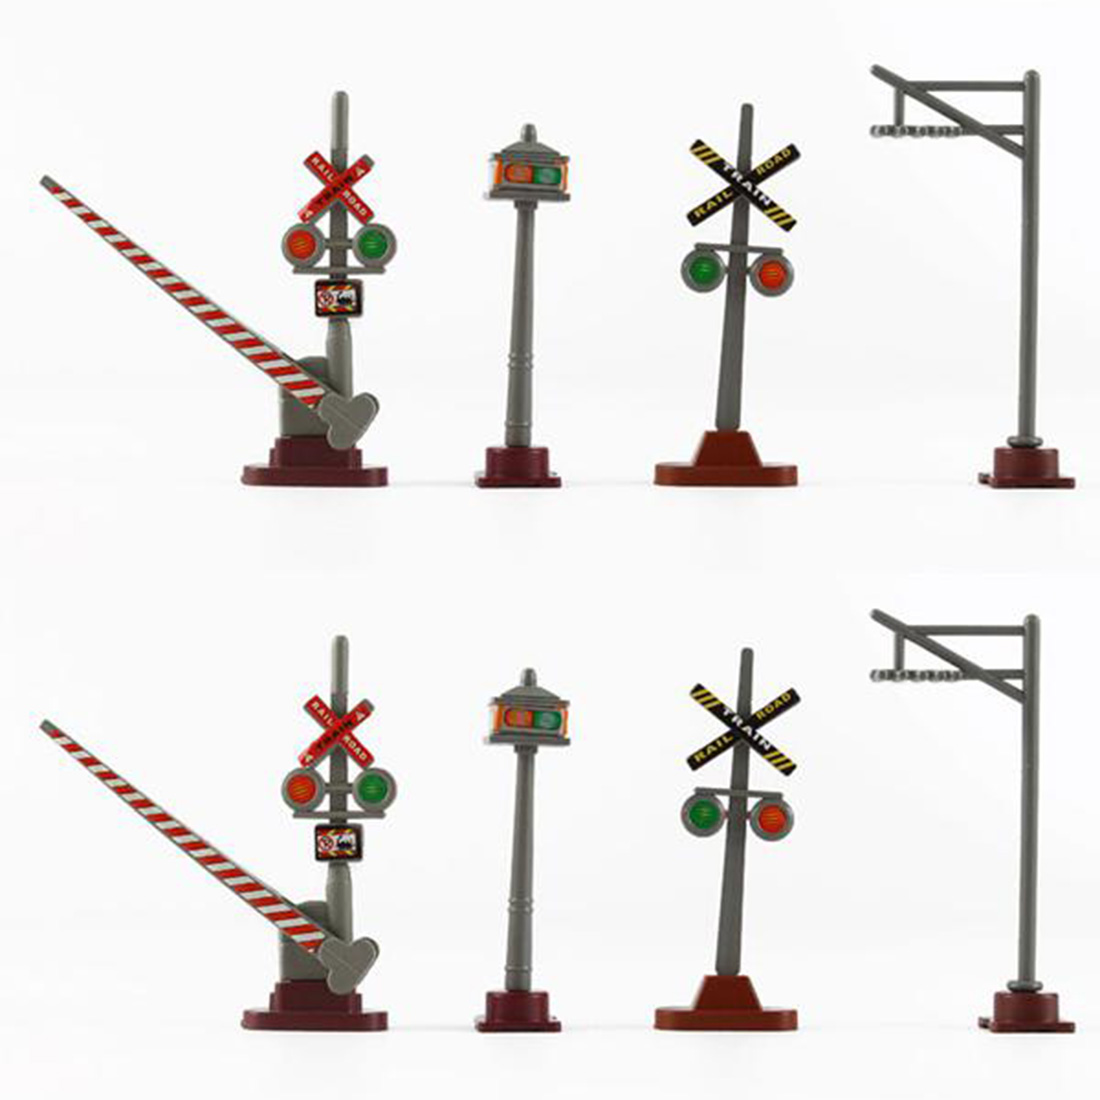 8Pcs Random Type 1:87 HO Scale Railway Scene Decoration Traffic Sign Model For Sand Table Building